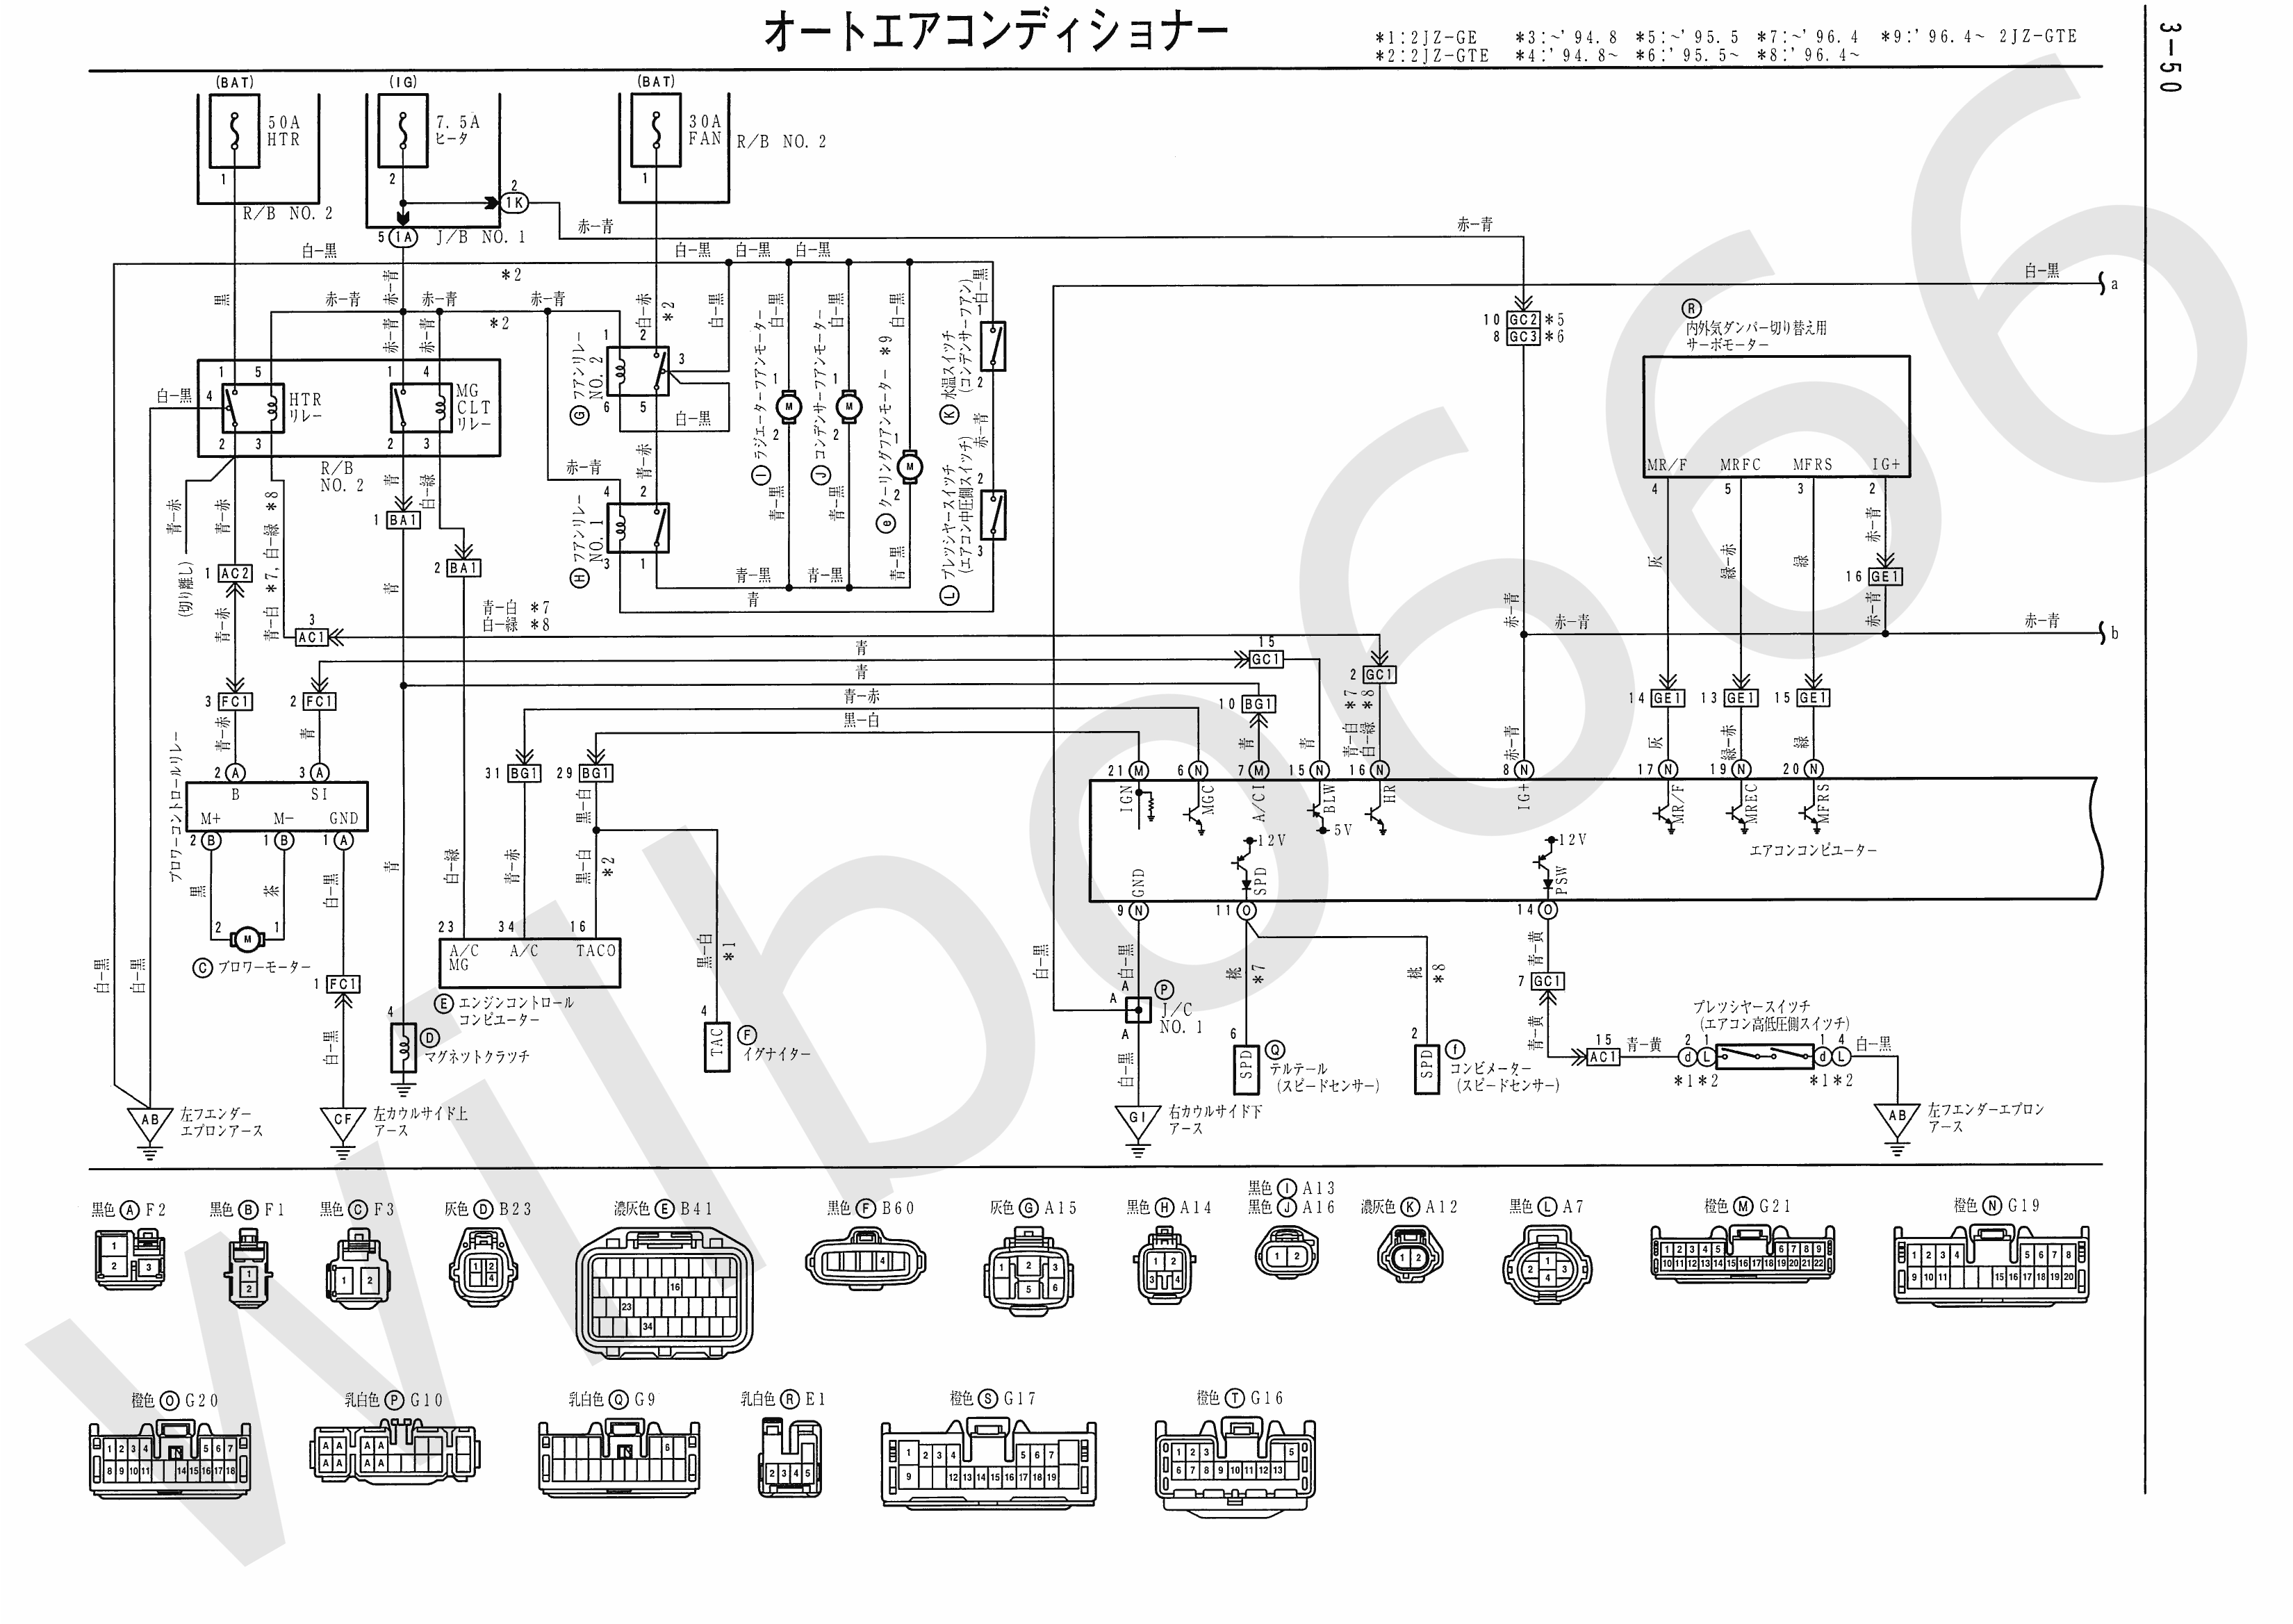 Sc300 Fuel Pump Wiring Diagram Worksheet And 2006 Lexus Gs300 Fuse Wilbo666 2jz Ge Jza80 Supra Engine Rh Pbworks Com Is300 1993